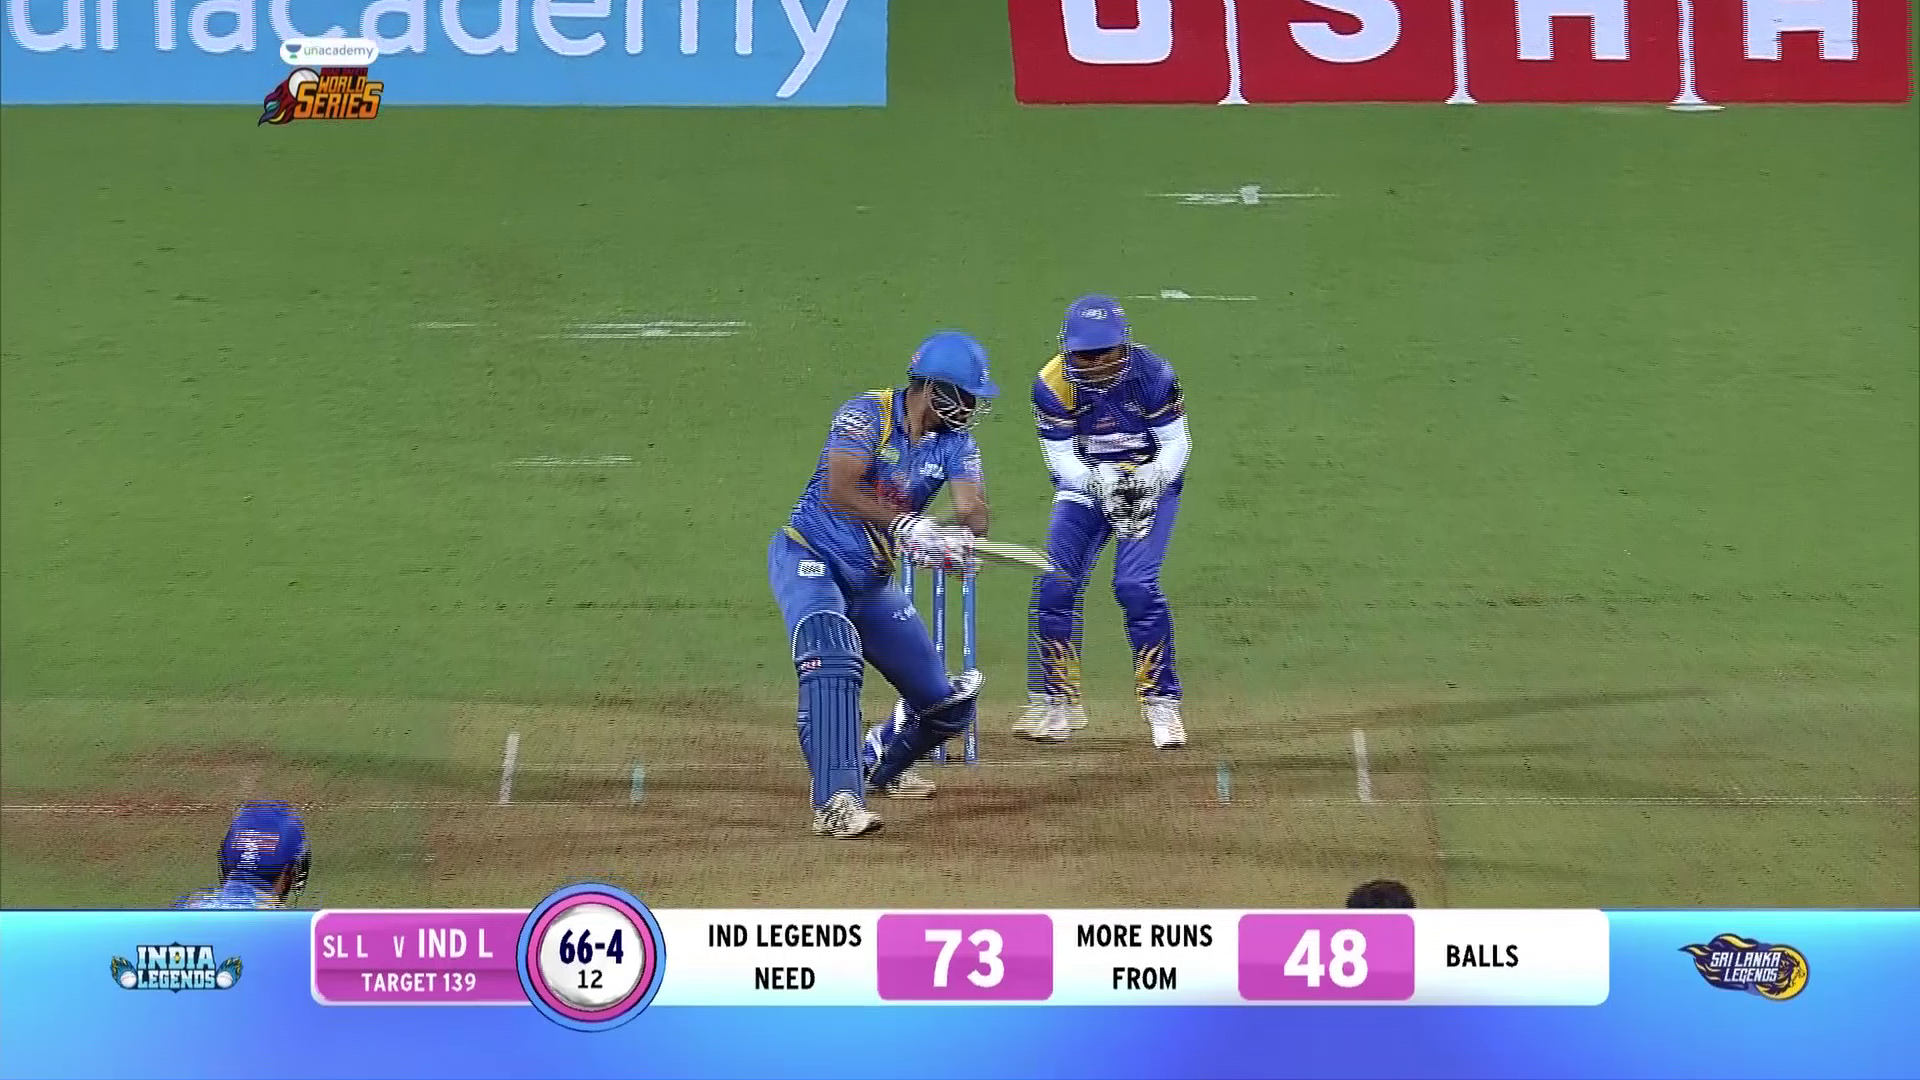 India Legends vs Srilanka Legends | Irfan Innings | 10th March 2020 | Unacademy Road Safety World Series